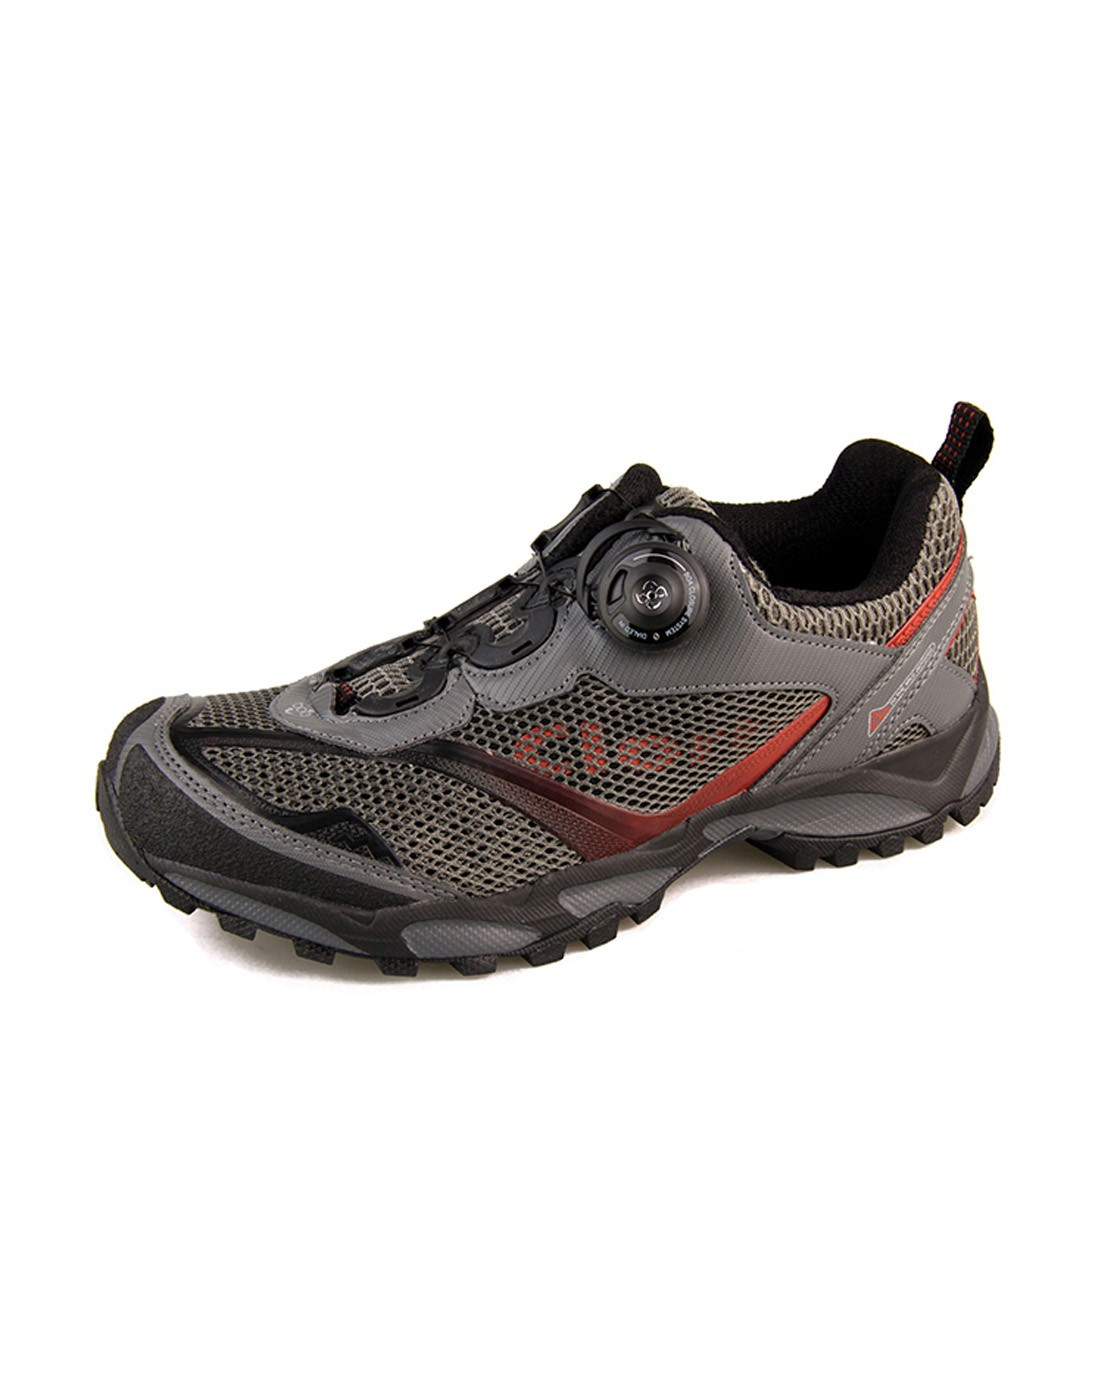 Outdoor Off Road Trail Running Shoes Manufacturers, Outdoor Off Road Trail Running Shoes Factory, Supply Outdoor Off Road Trail Running Shoes